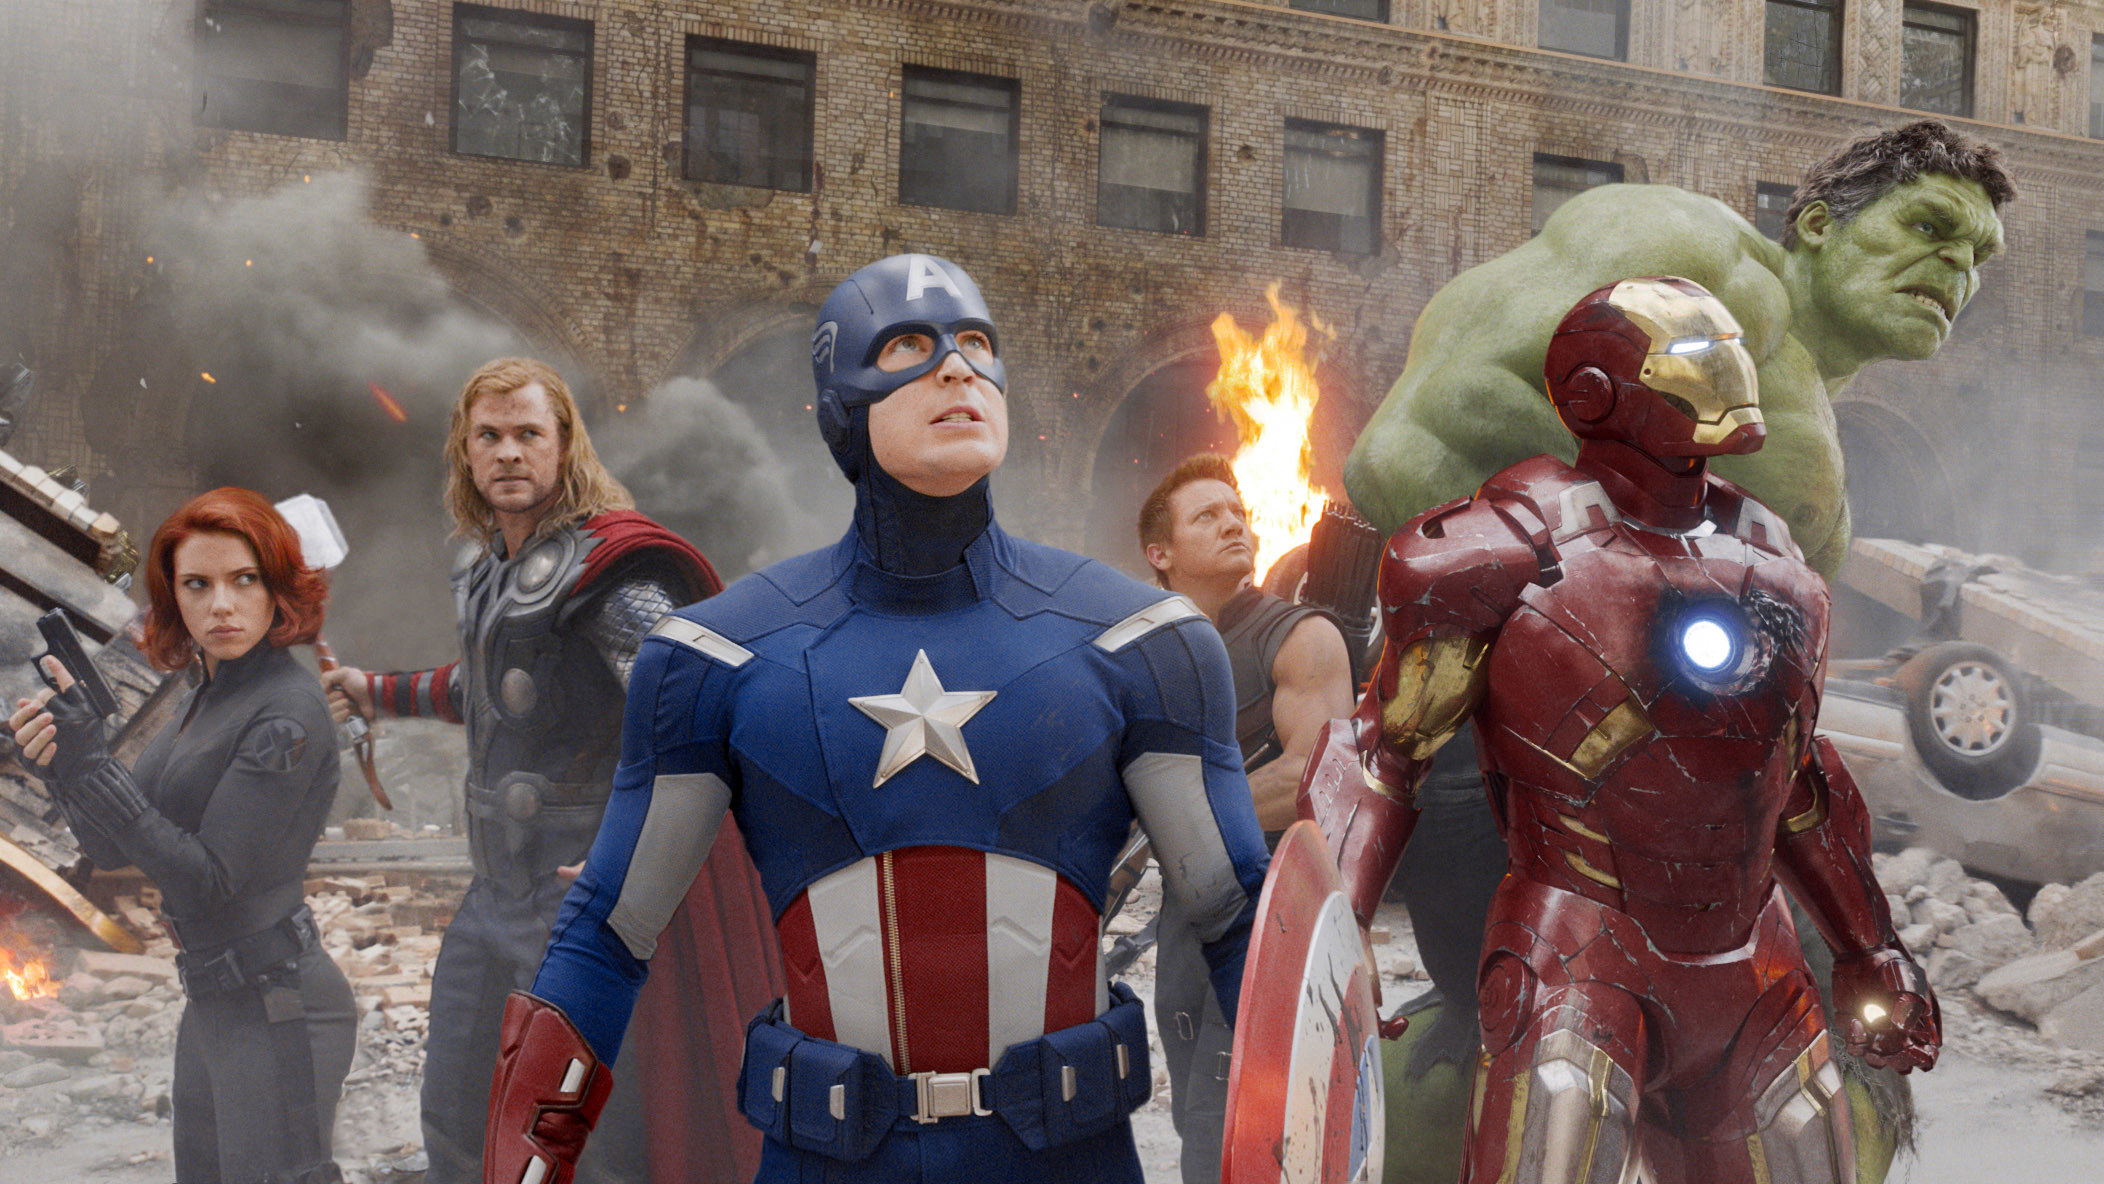 Black Widow standing with Thor, Captain America, Hawkeye, Iron Man, and the Hulk during a battle scene